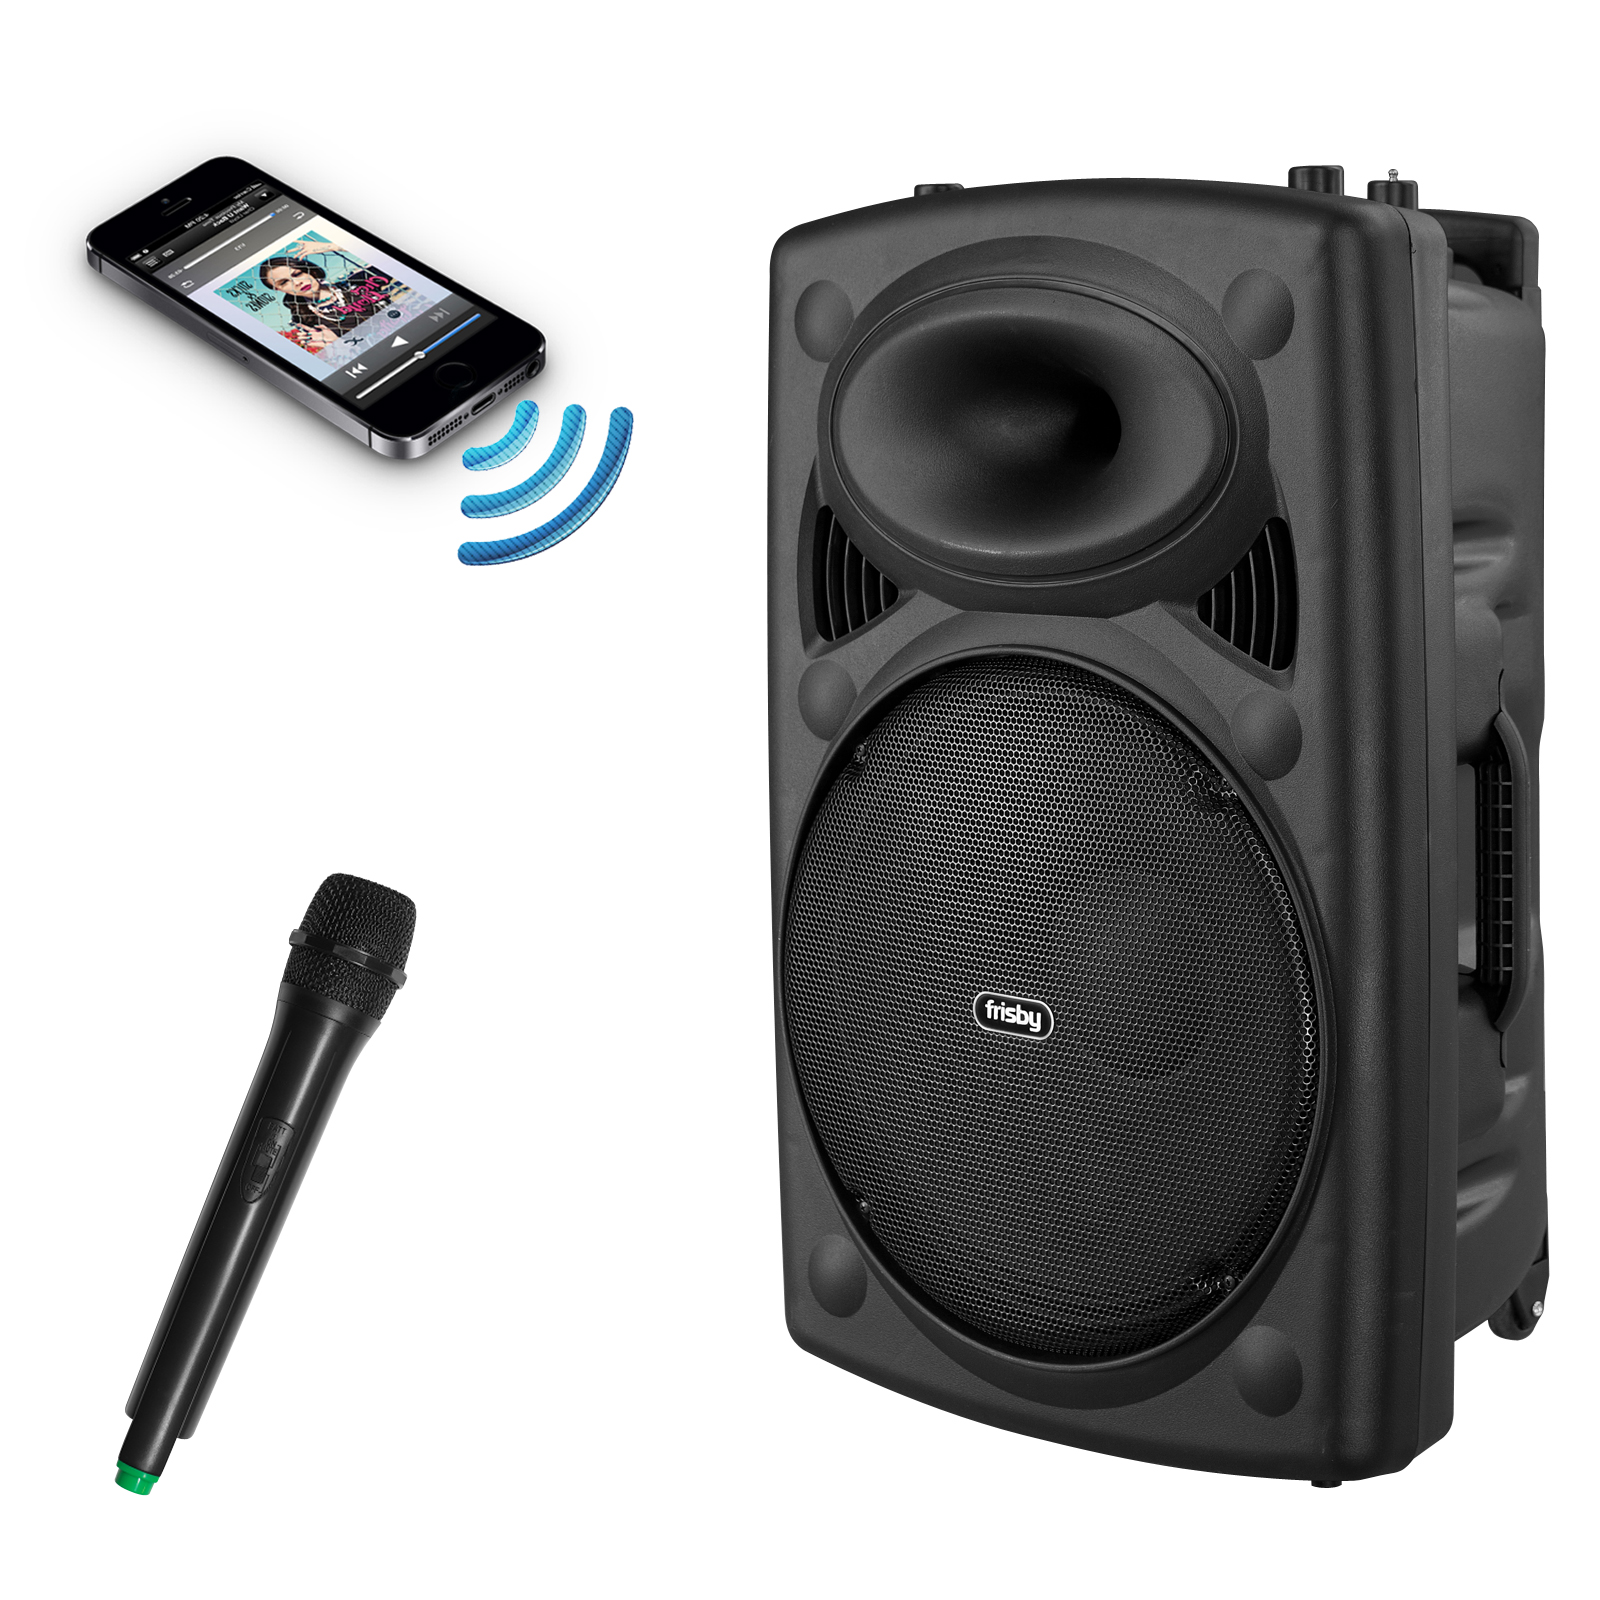 Frisby FS-4060P Portable Rechargeable Bluetooth Karaoke Machine PA Speaker System w/ Telescoping Handle & Wheels w/ Wireless Microphone, FM Radio, USB SD Slots for Parties & Events